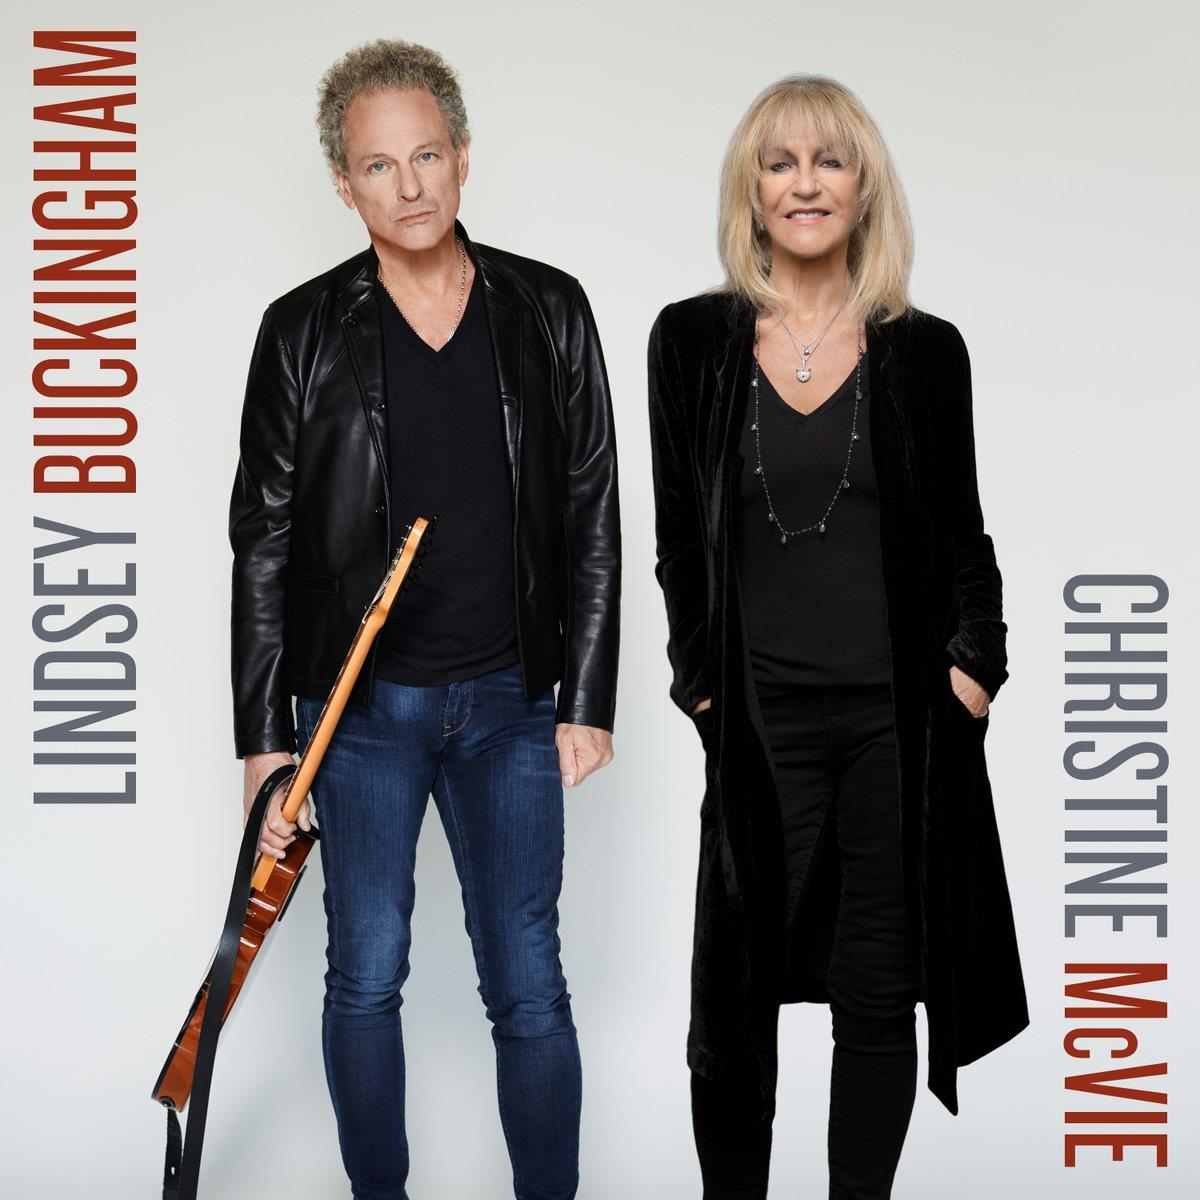 0190295828301 Atlantic  Lindsey Buckingham/ Christine McVie Lindsey Buckingham/ Christine McVie (LP)